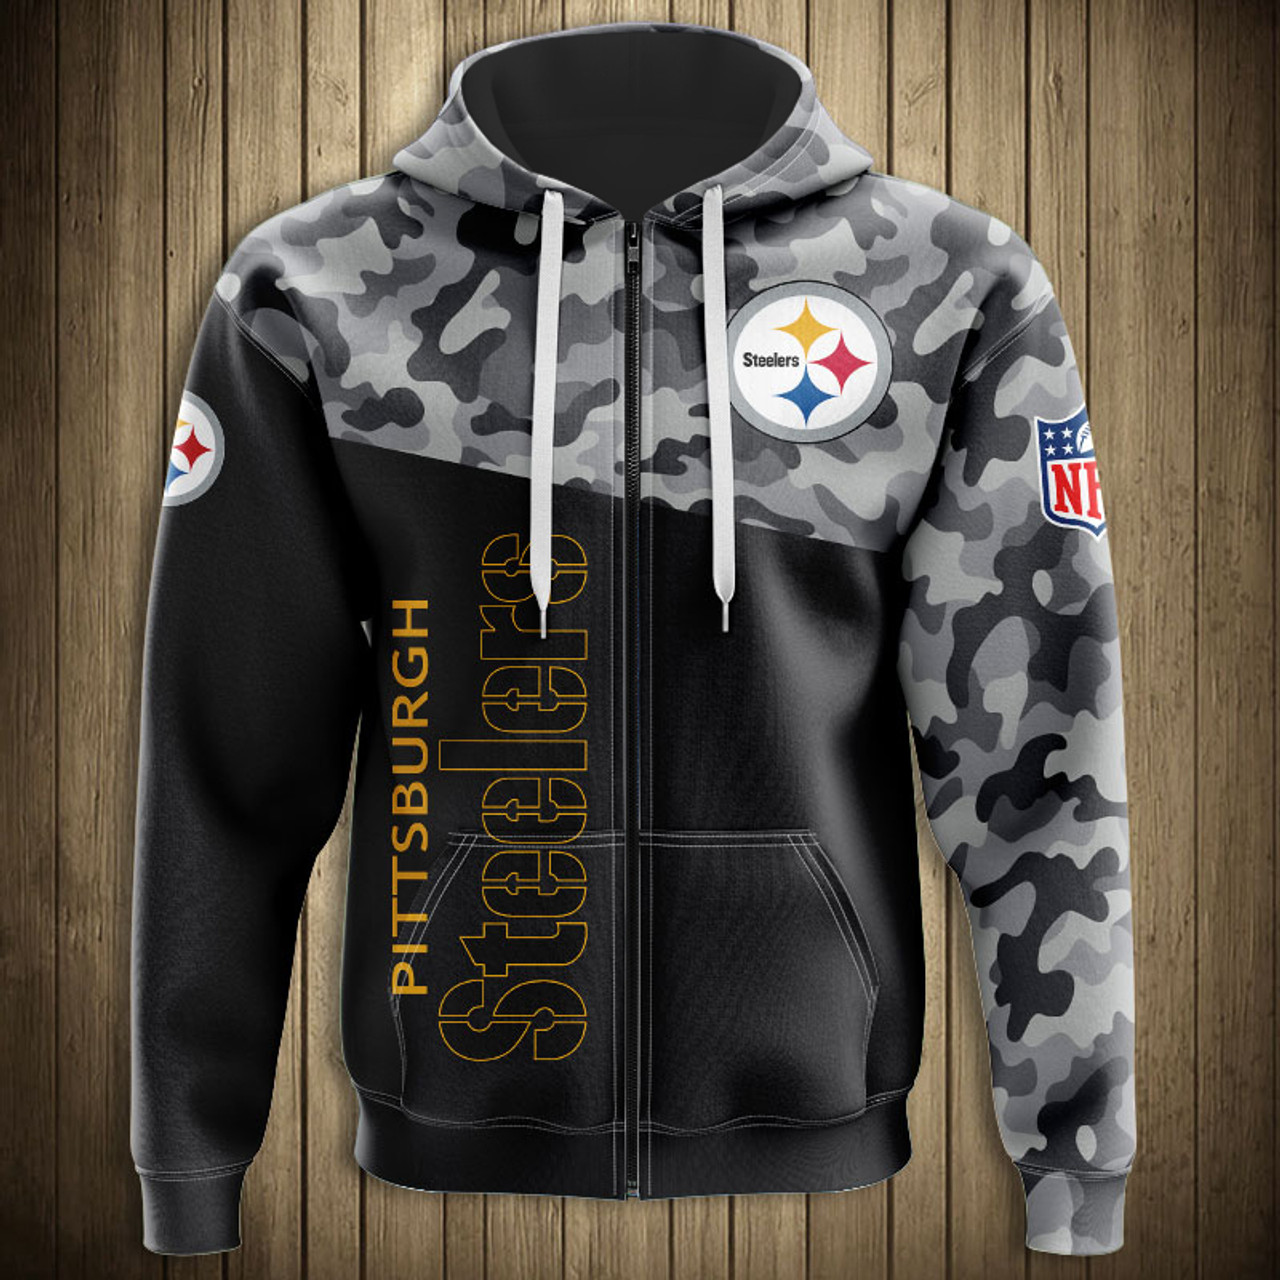 wholesale dealer a0da8 32bb6 **(OFFICIAL-N.F.L.PITTSBURGH-STEELERS-CAMO.DESIGN-ZIPPERED-HOODIES/3D-CUSTOM-STEELERS-LOGOS  & OFFICIAL-STEELERS-TEAM-COLORS/DETAILED-3D-GRAPHIC-PRINTE...